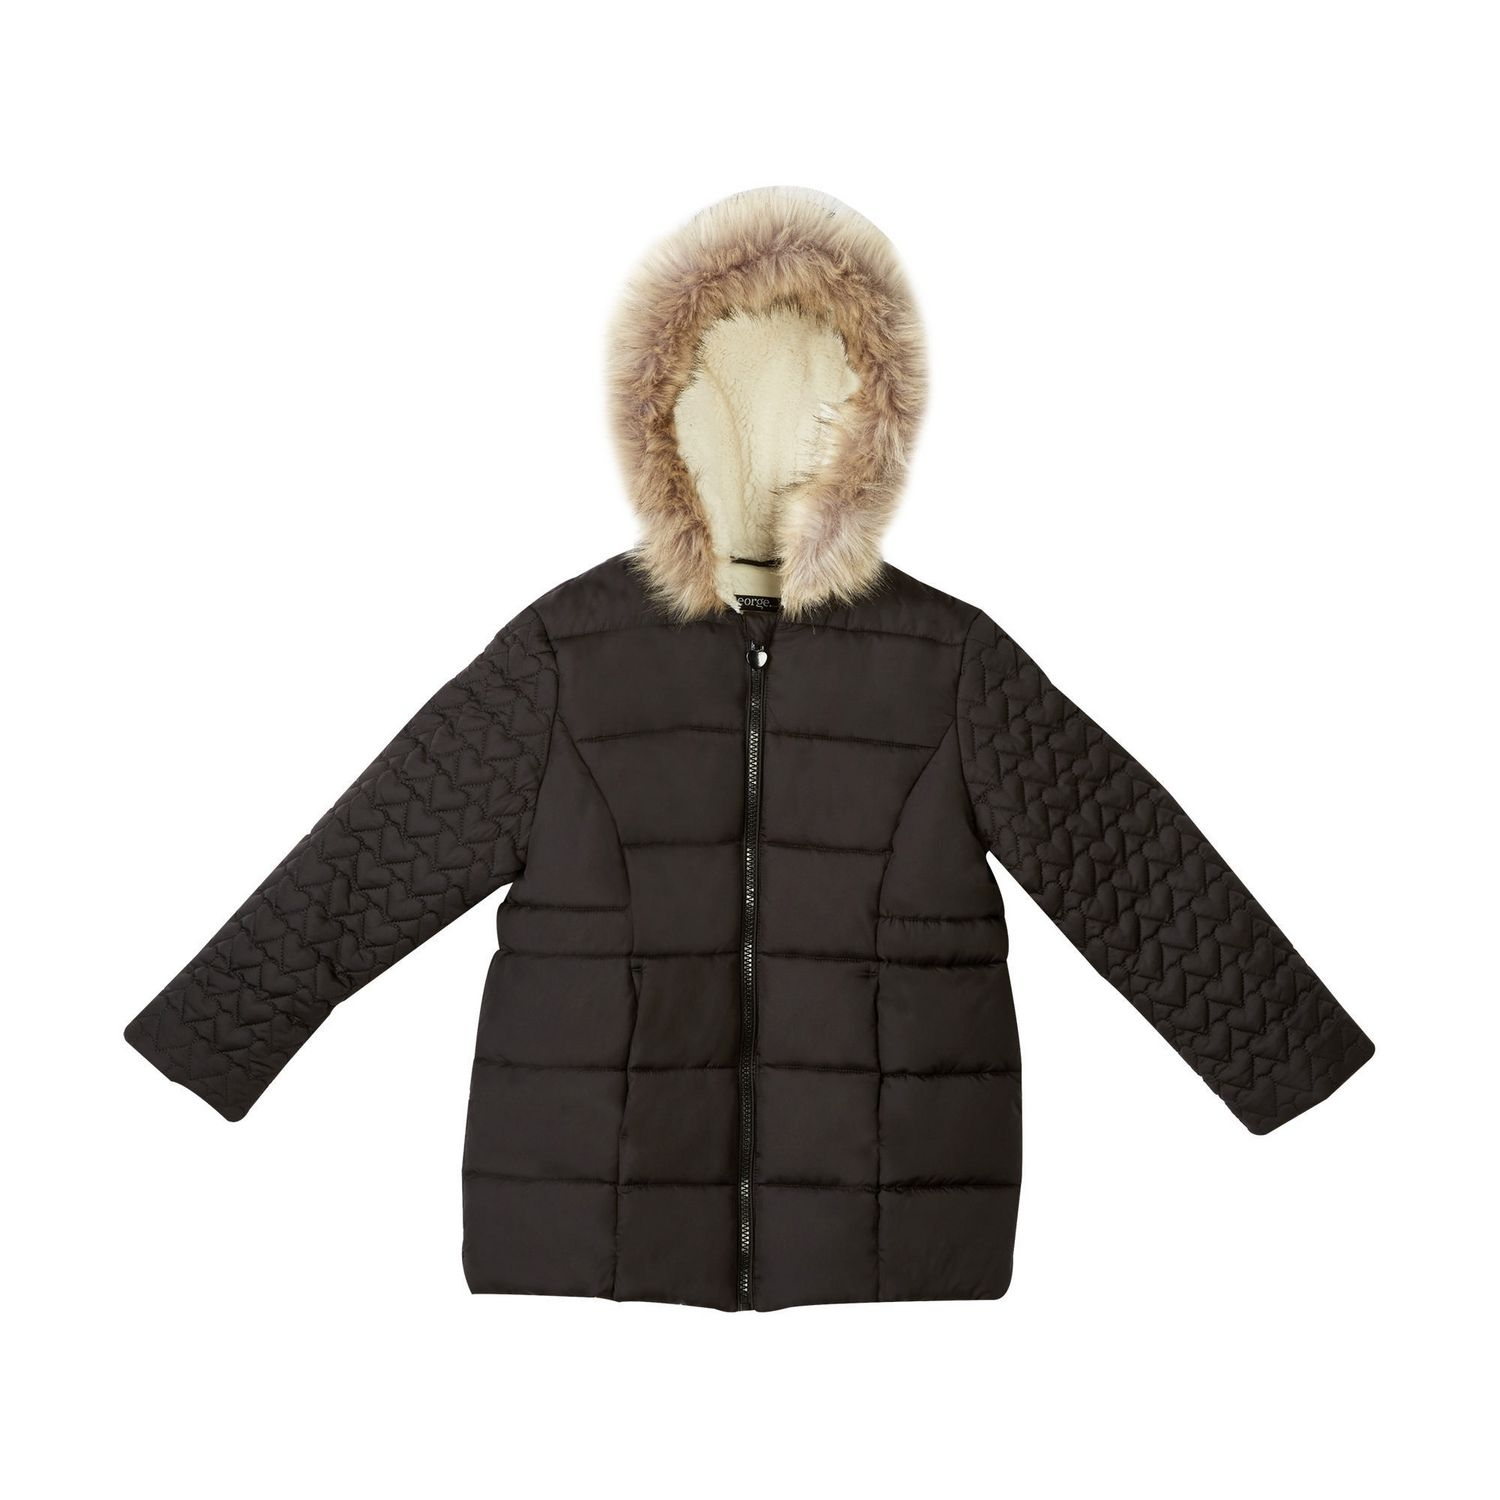 ab3524c76 George Girls' Quilted Puffer Jacket | Walmart Canada